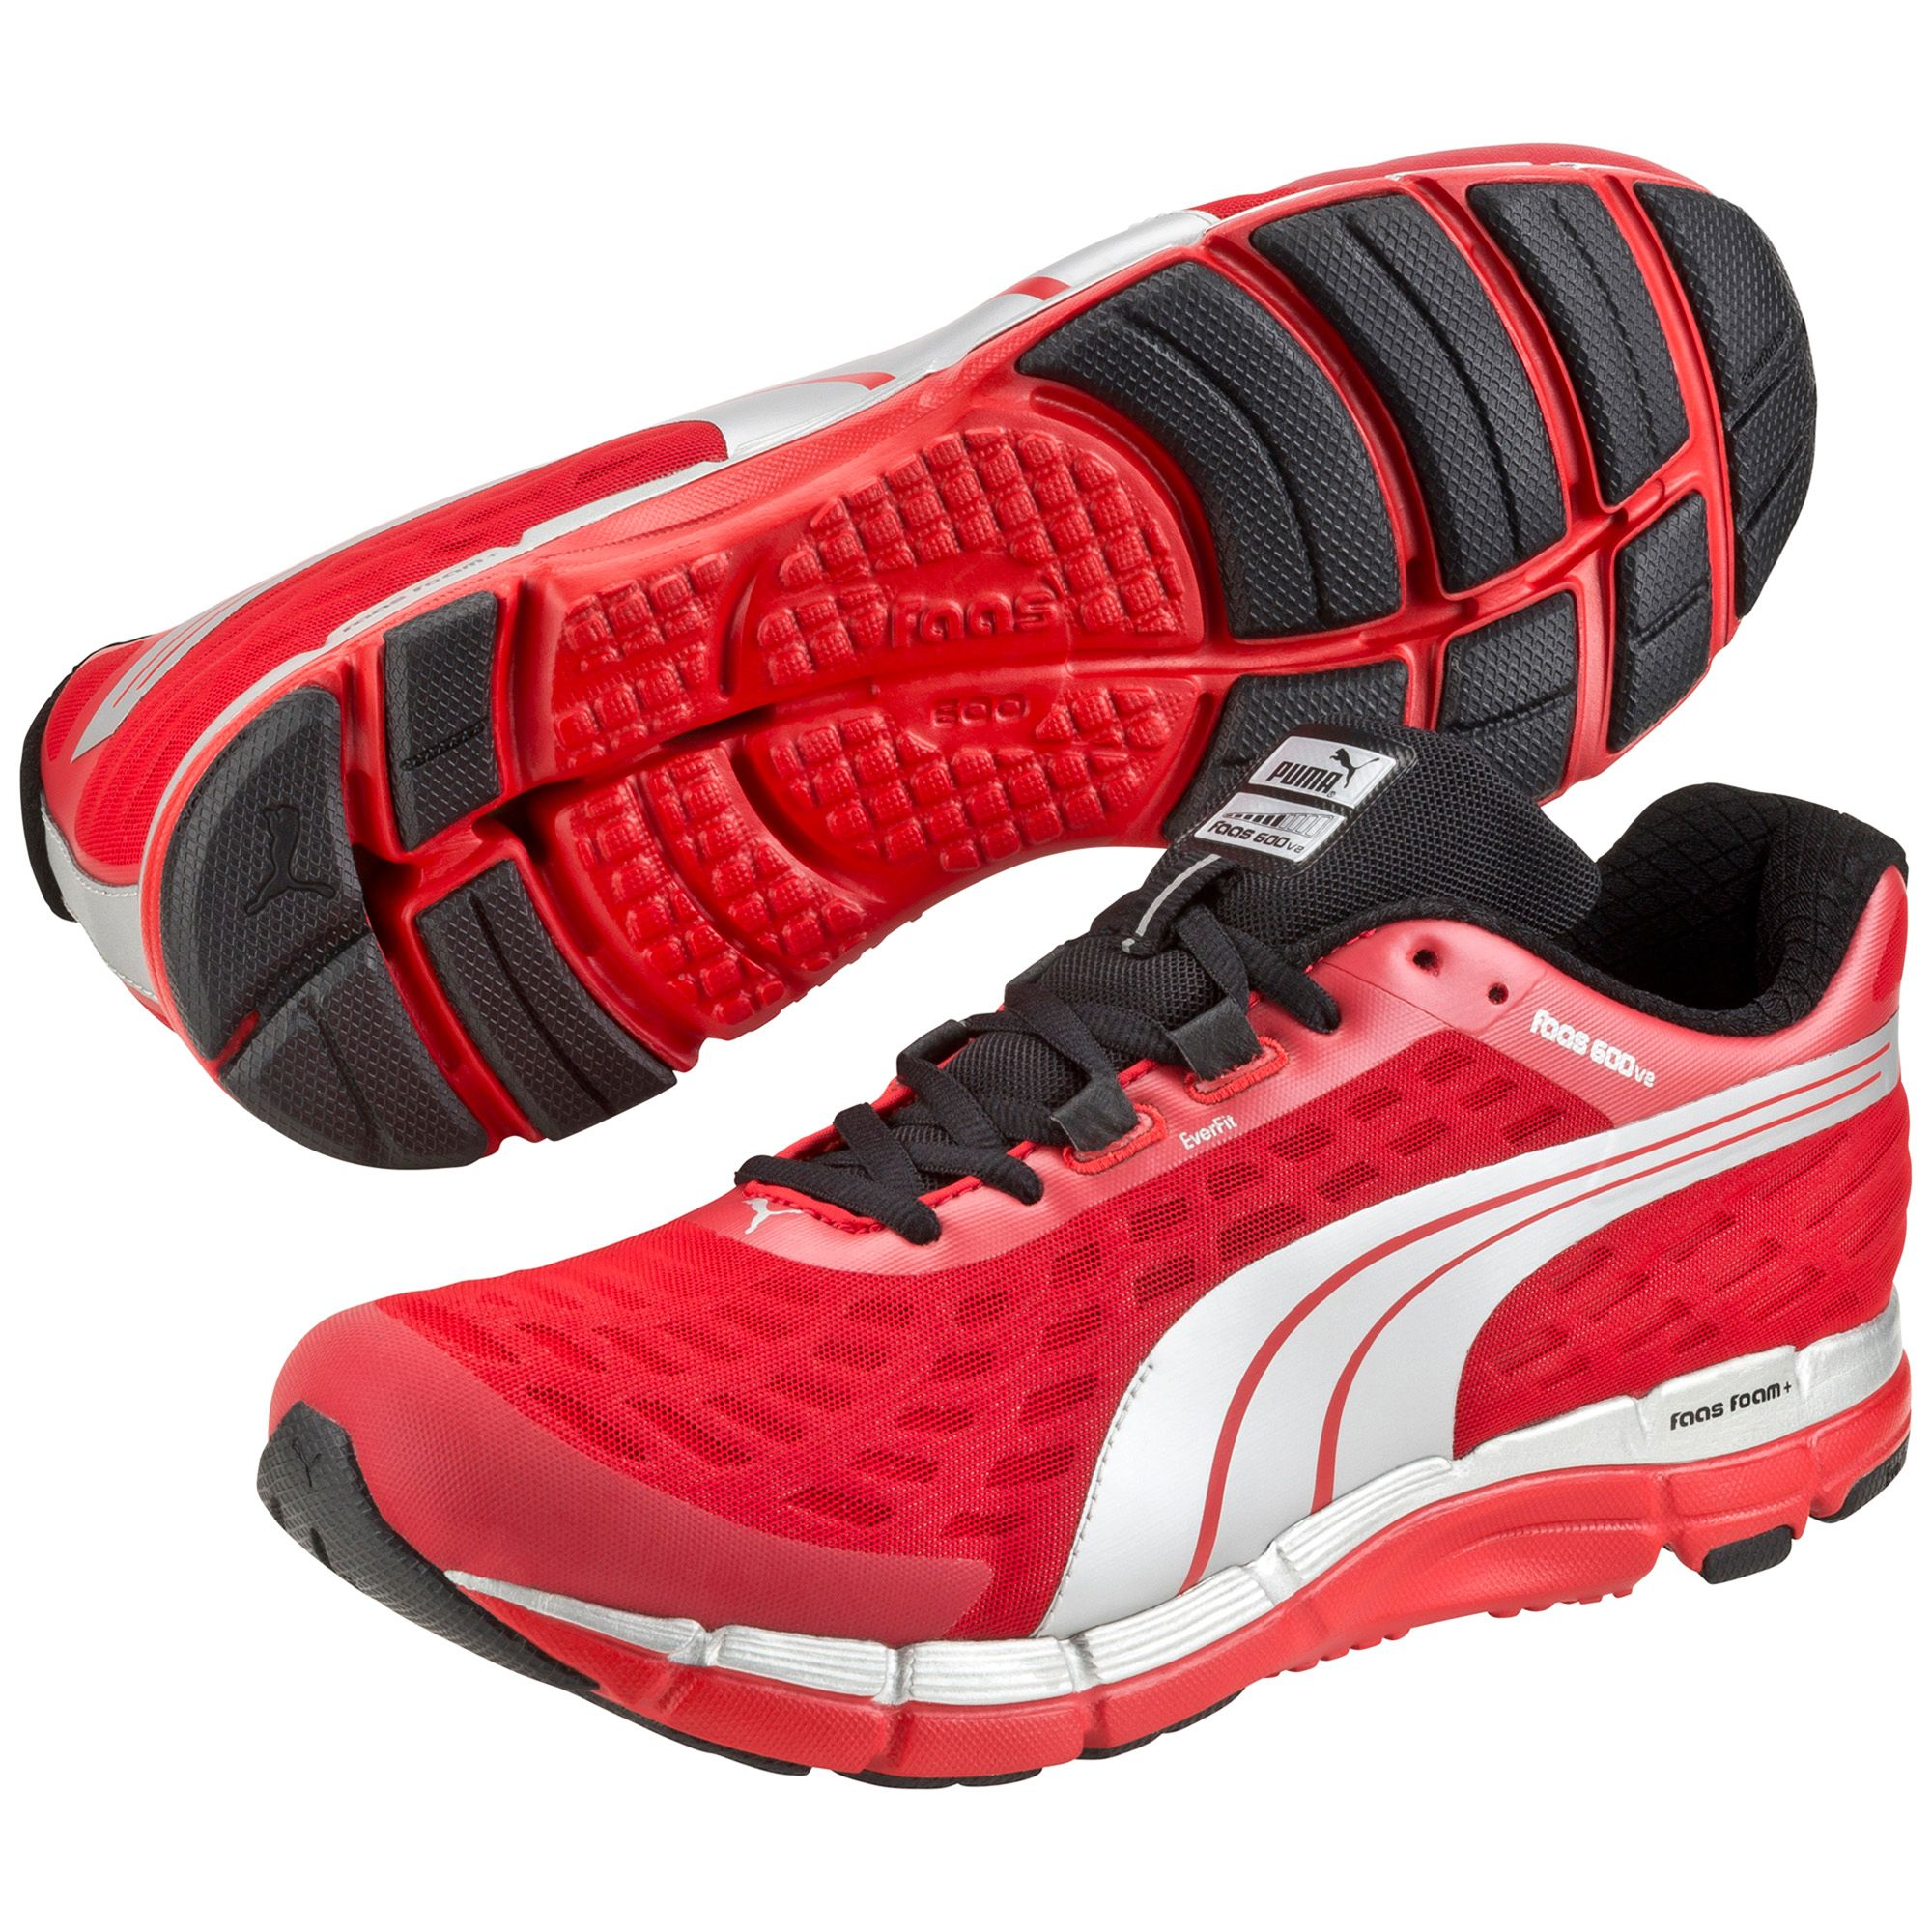 Running Shoes With Great Cushioning